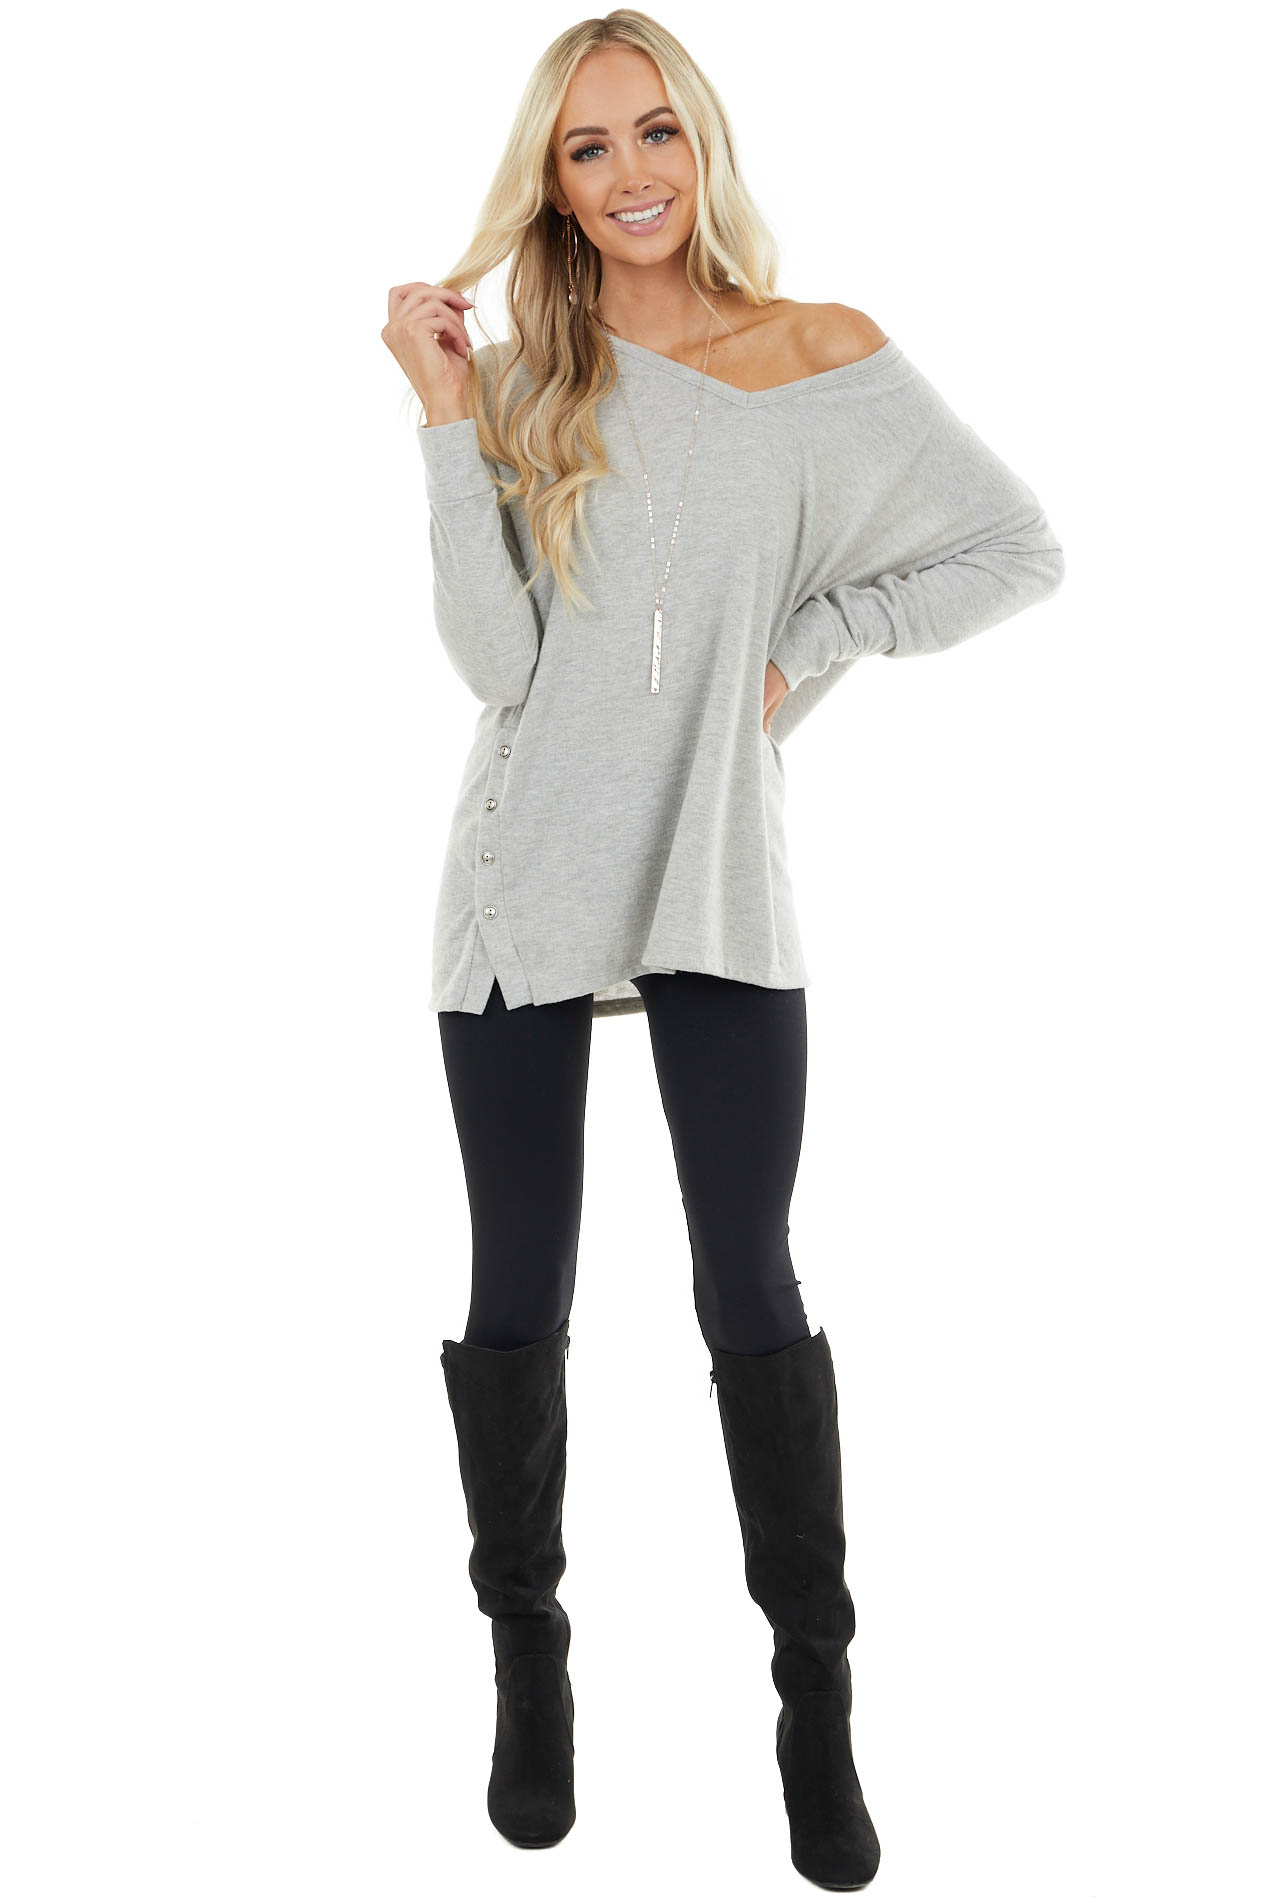 Heather Grey Soft Knit Top with Side Slits and Buttons